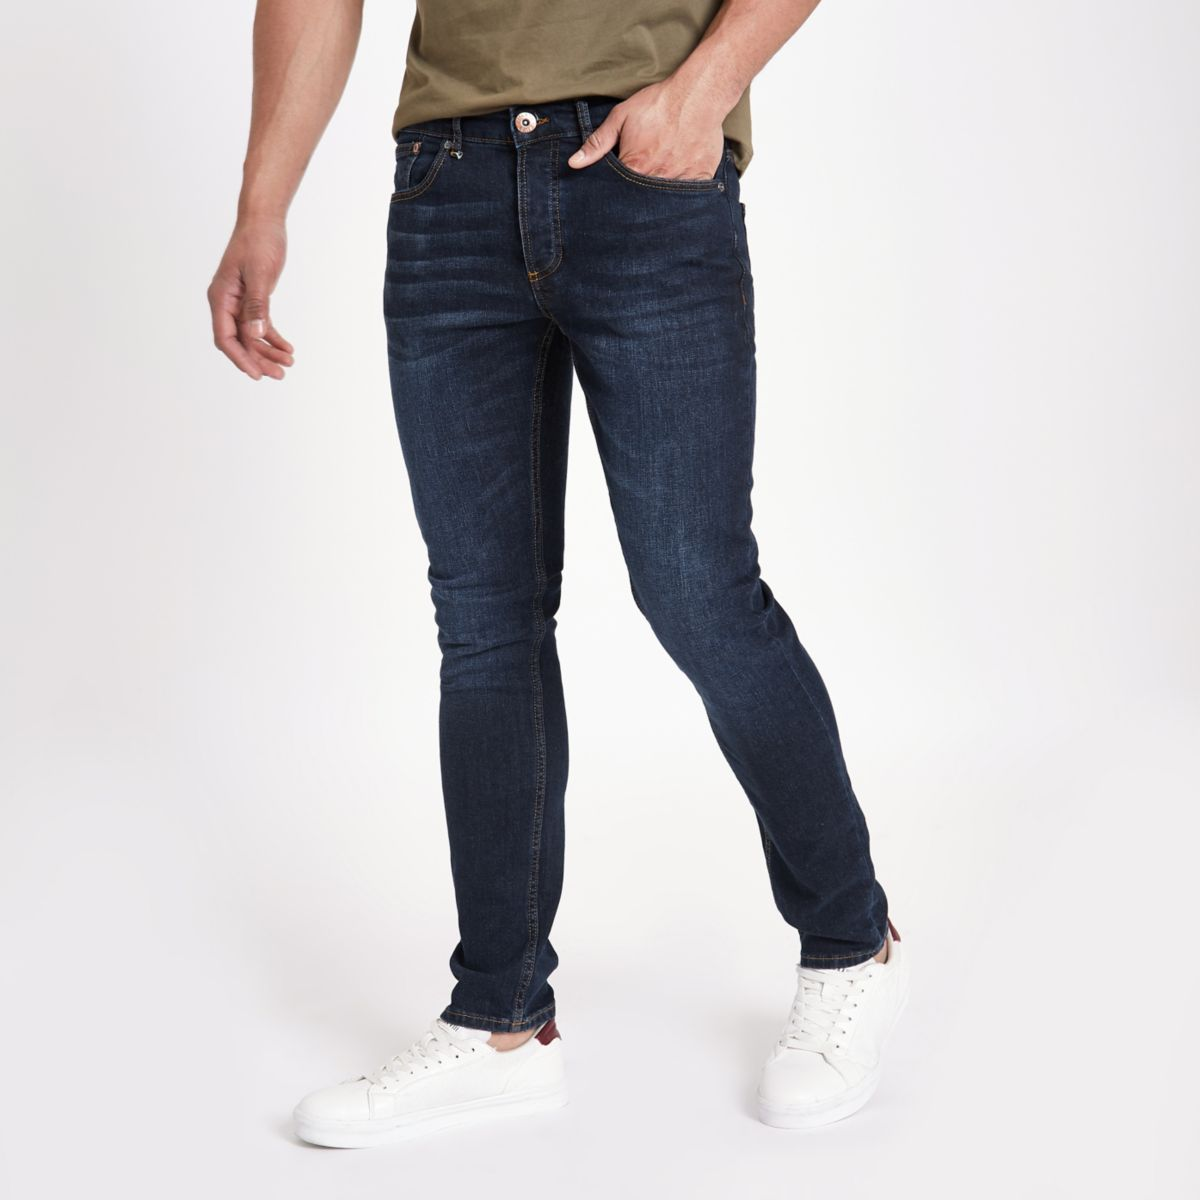 Cool jeans for men - large selection of quality jeans of many different types: Black jeans, ripped jeans, destroyed jeans, light jeans, grey jeans and denim pants in different fittings: slim fit, skinny .